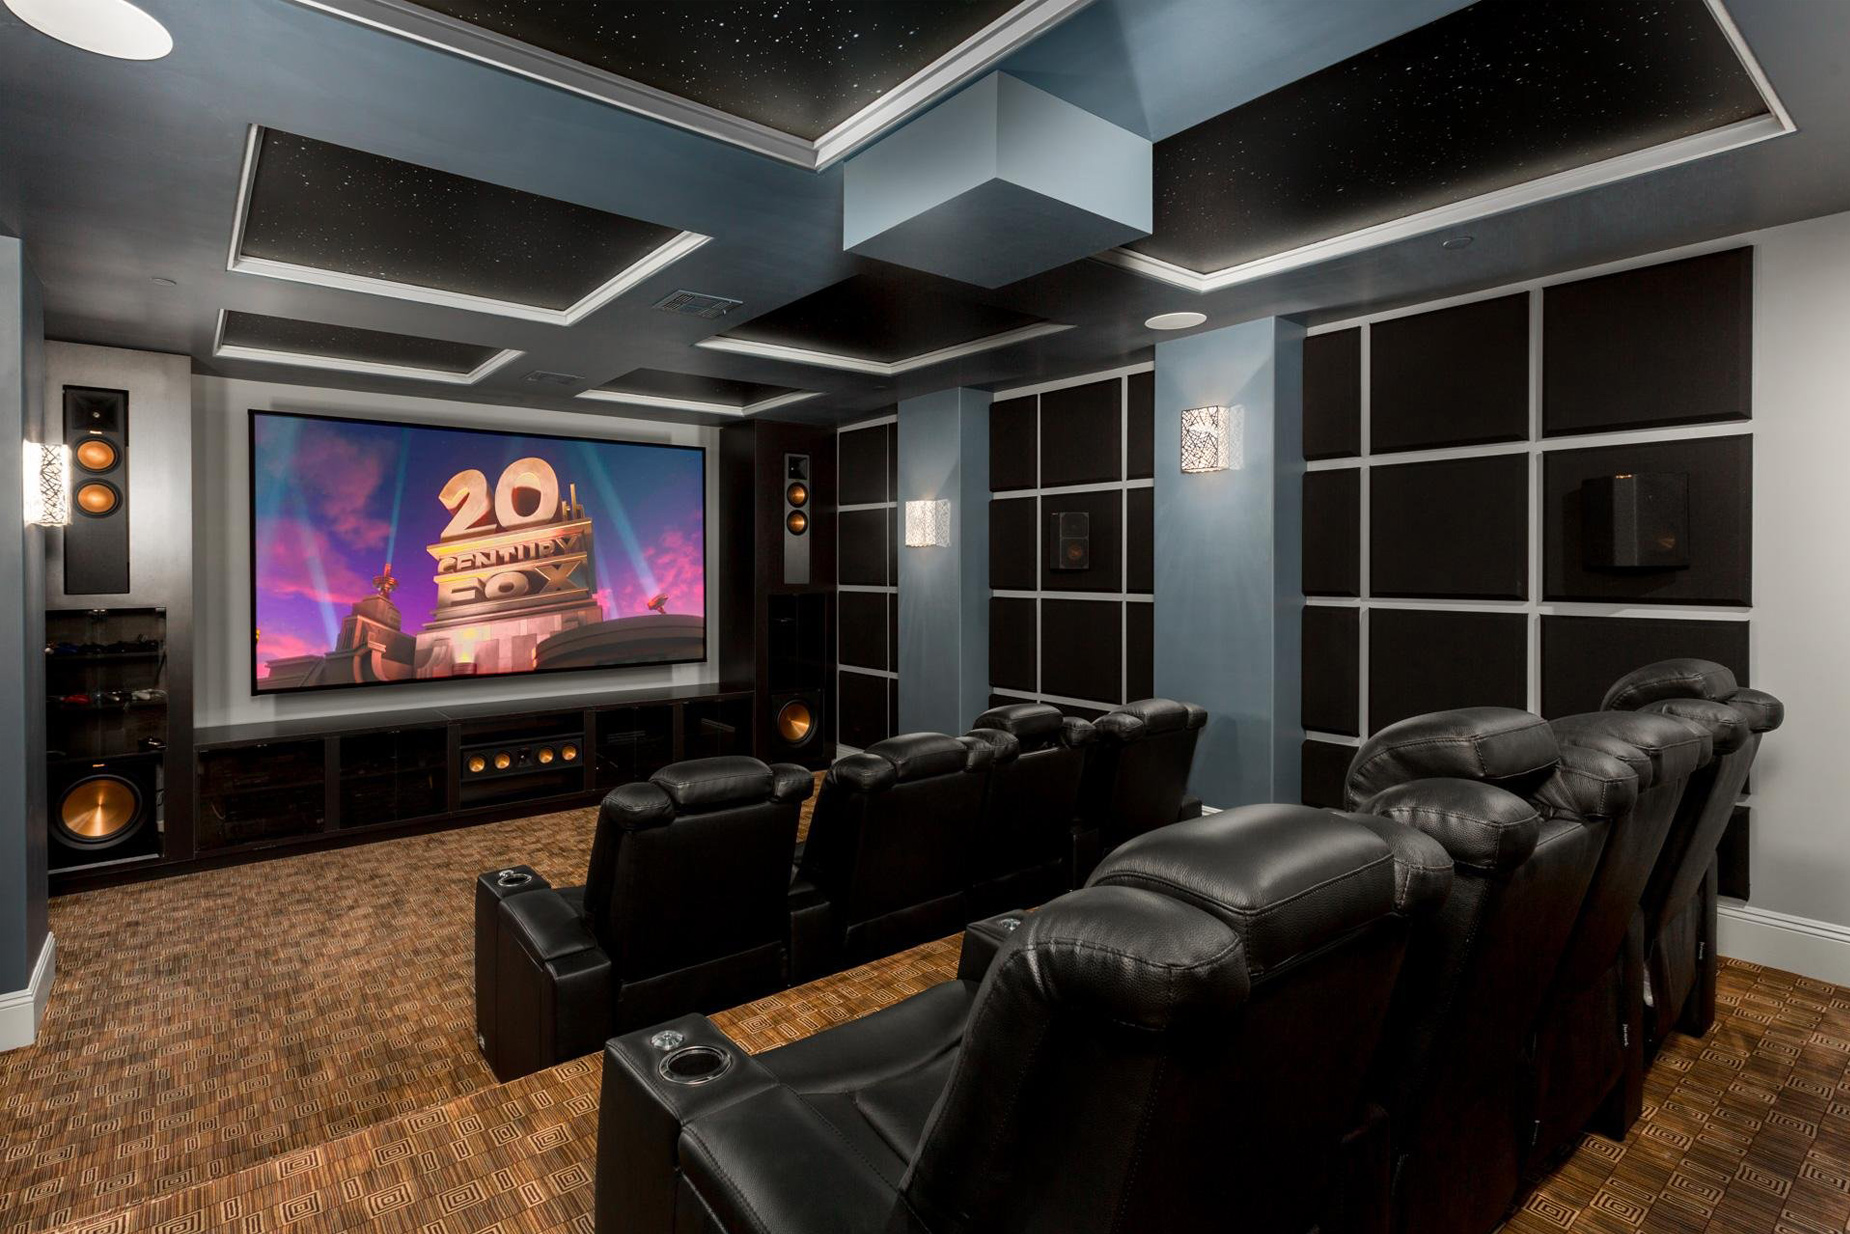 Wondering how much it costs to setup a home theater? Here's a cost breakdown